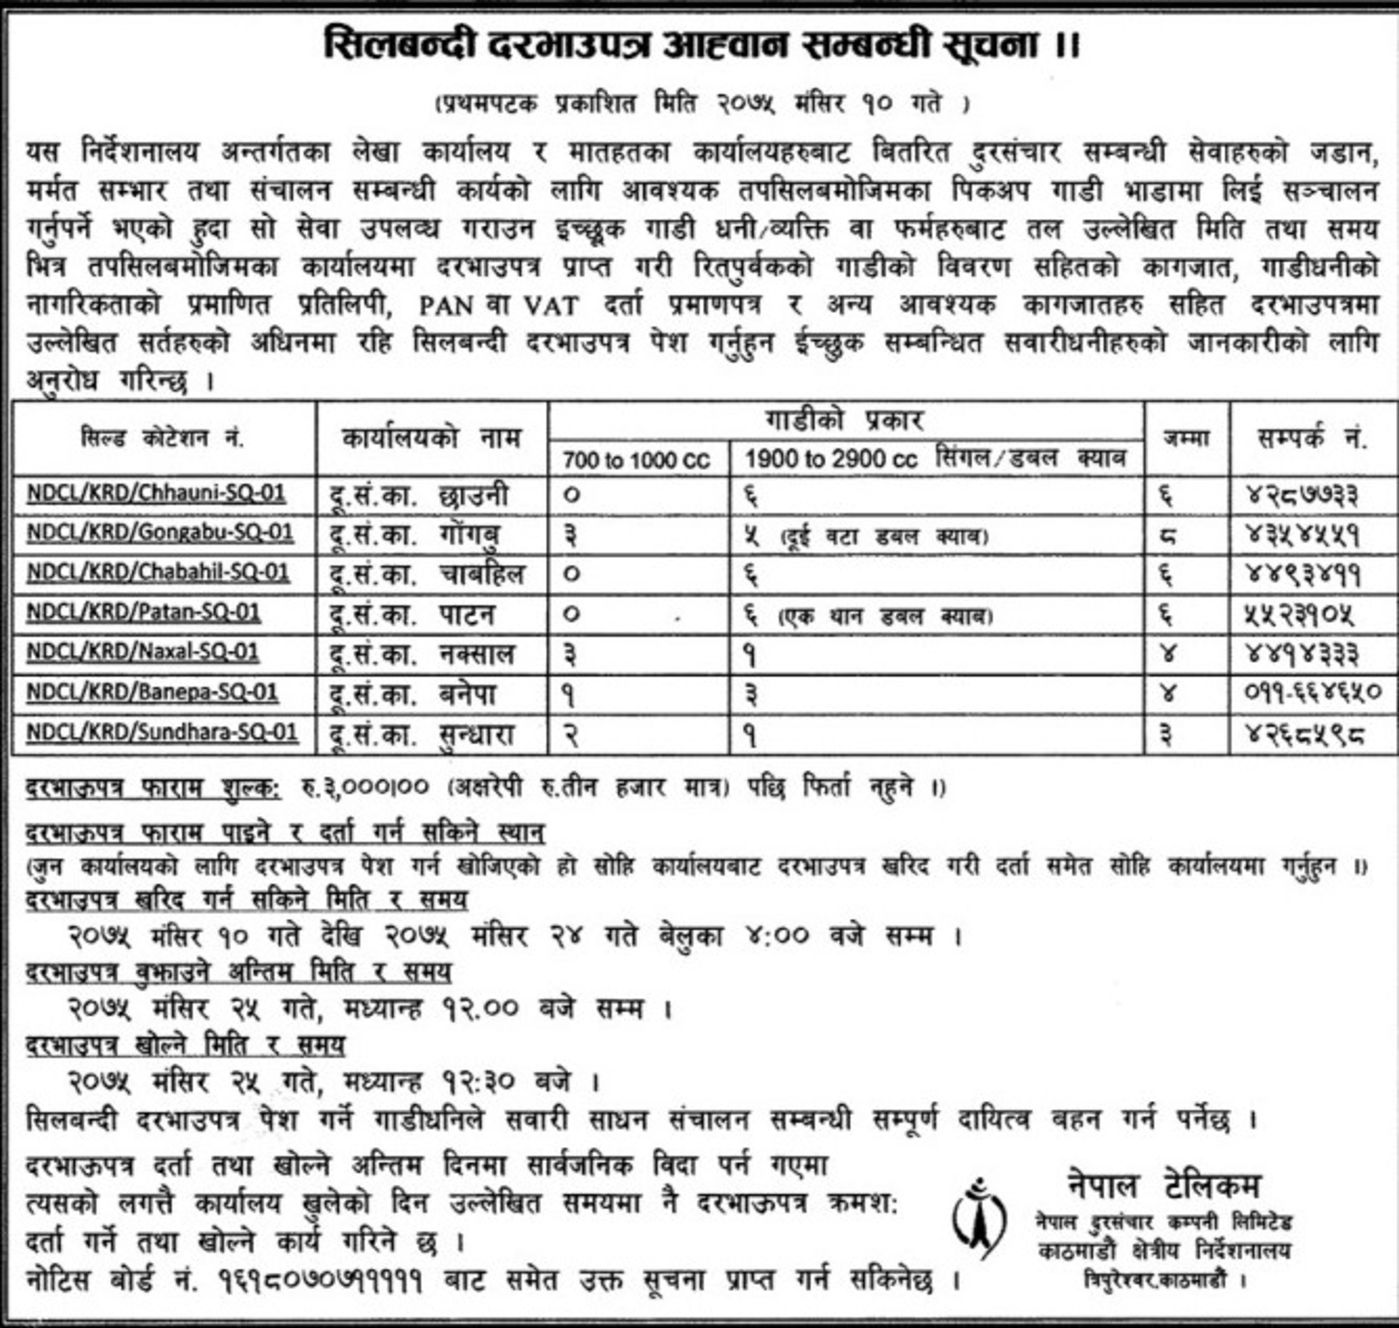 Bids and Tenders Nepal - Tender -Construction and Maintenance of